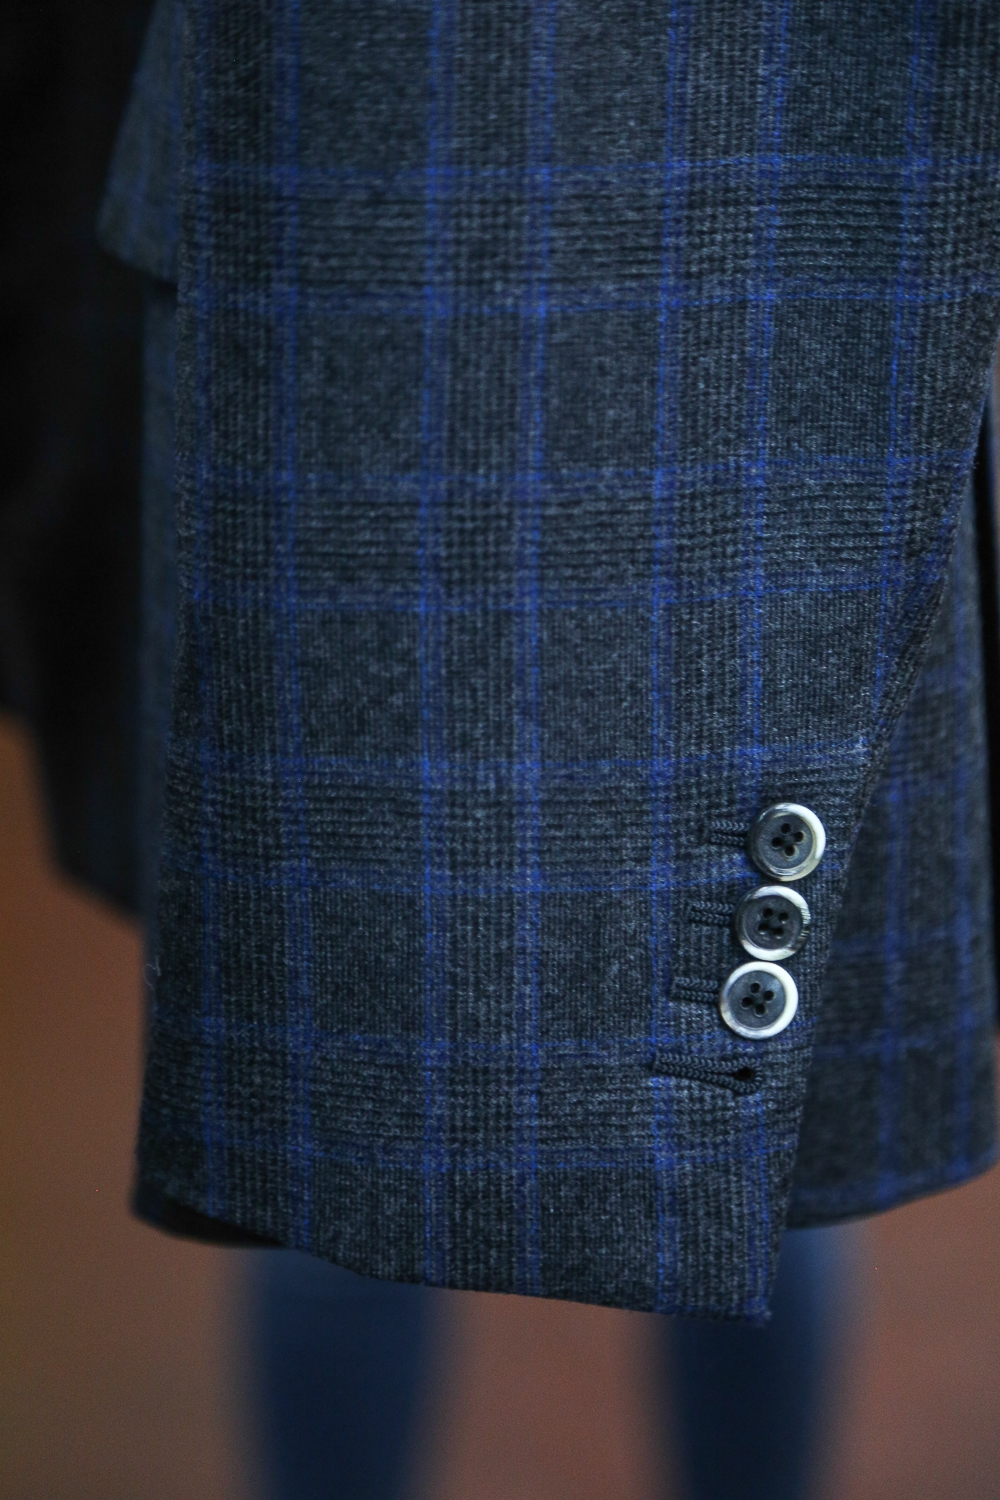 Review: Belvest Made-to-Measure Suit Pre-established patterns counterbalanced by a sartorial attention to the details